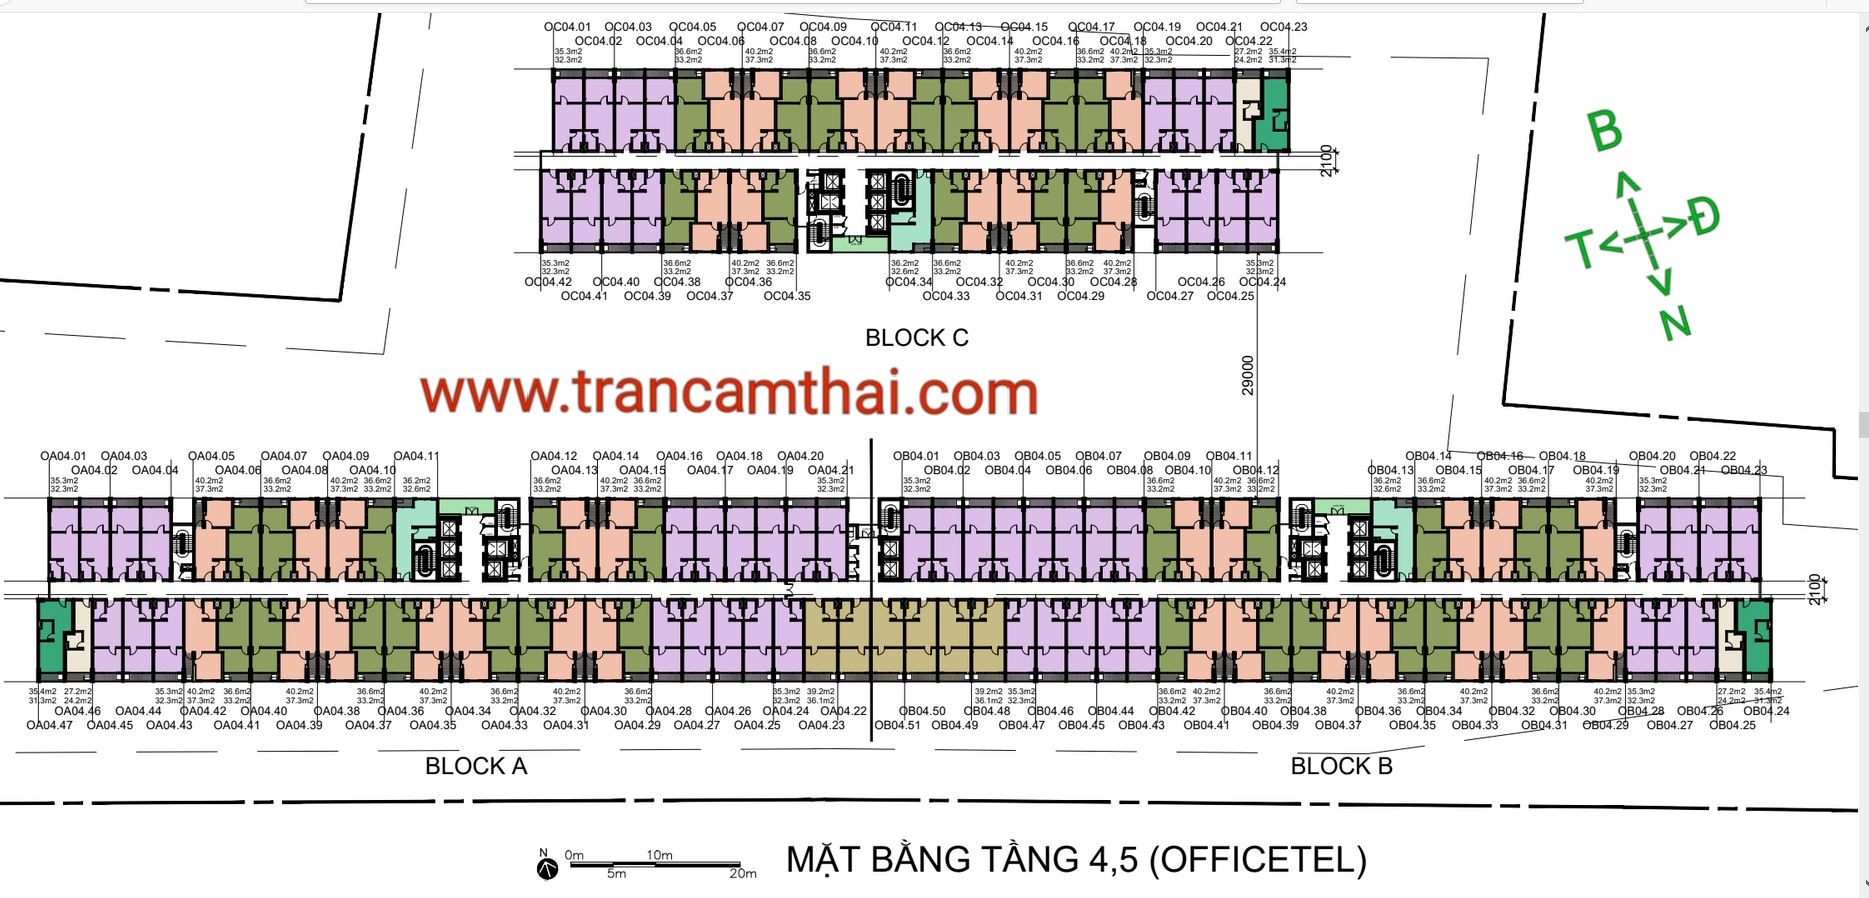 mặt bằng office-tel tầng 4-5 the elysium